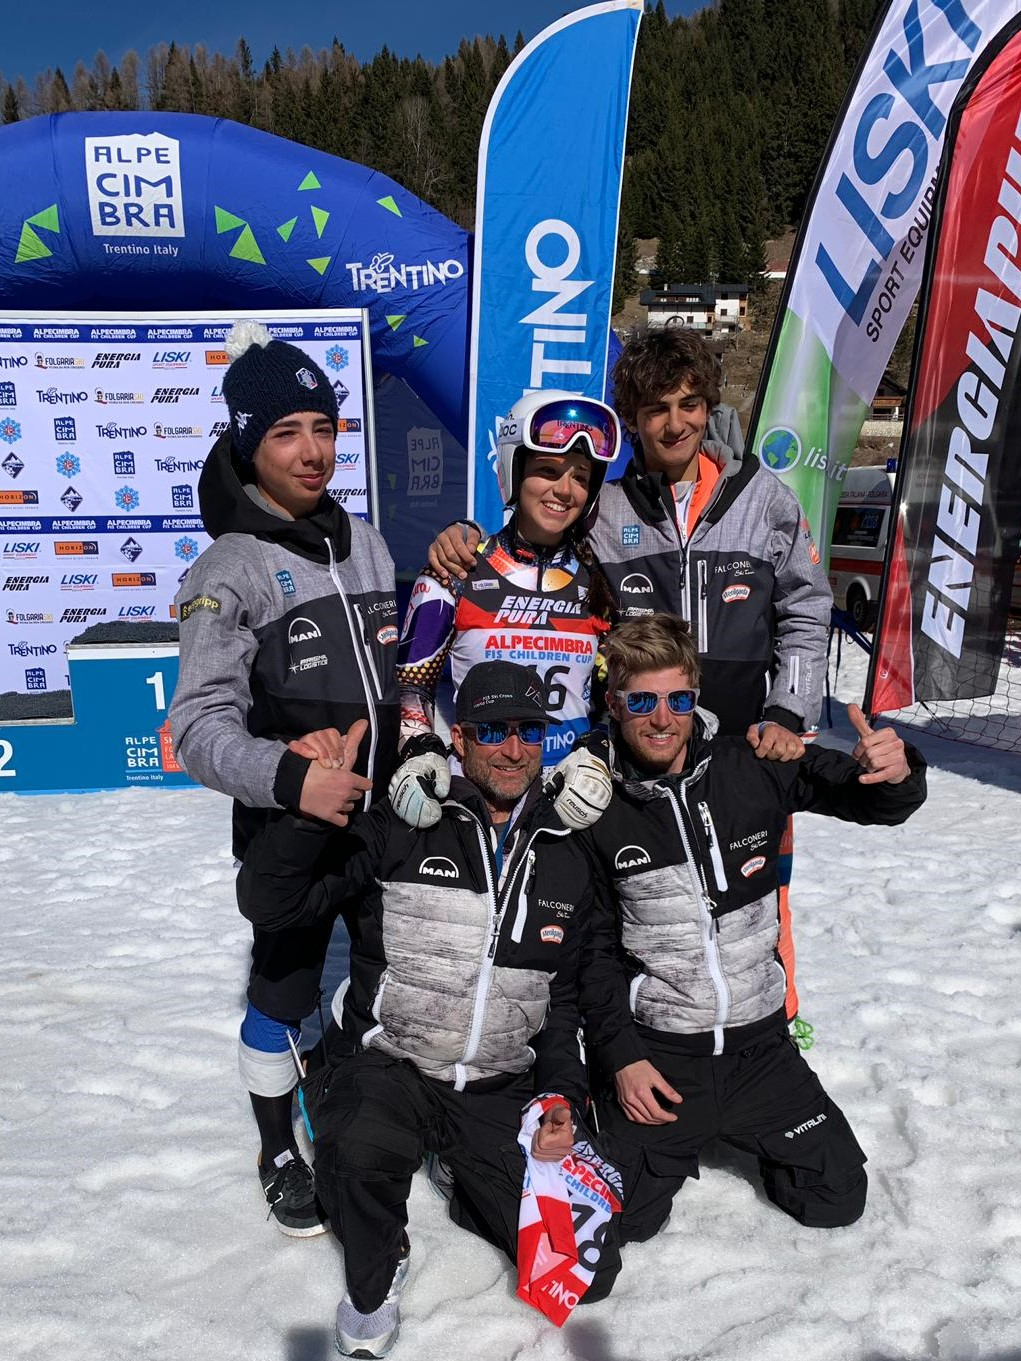 Falconeri Ski Team protagonista all'Alpe Cimbra FIS Children Cup 2019